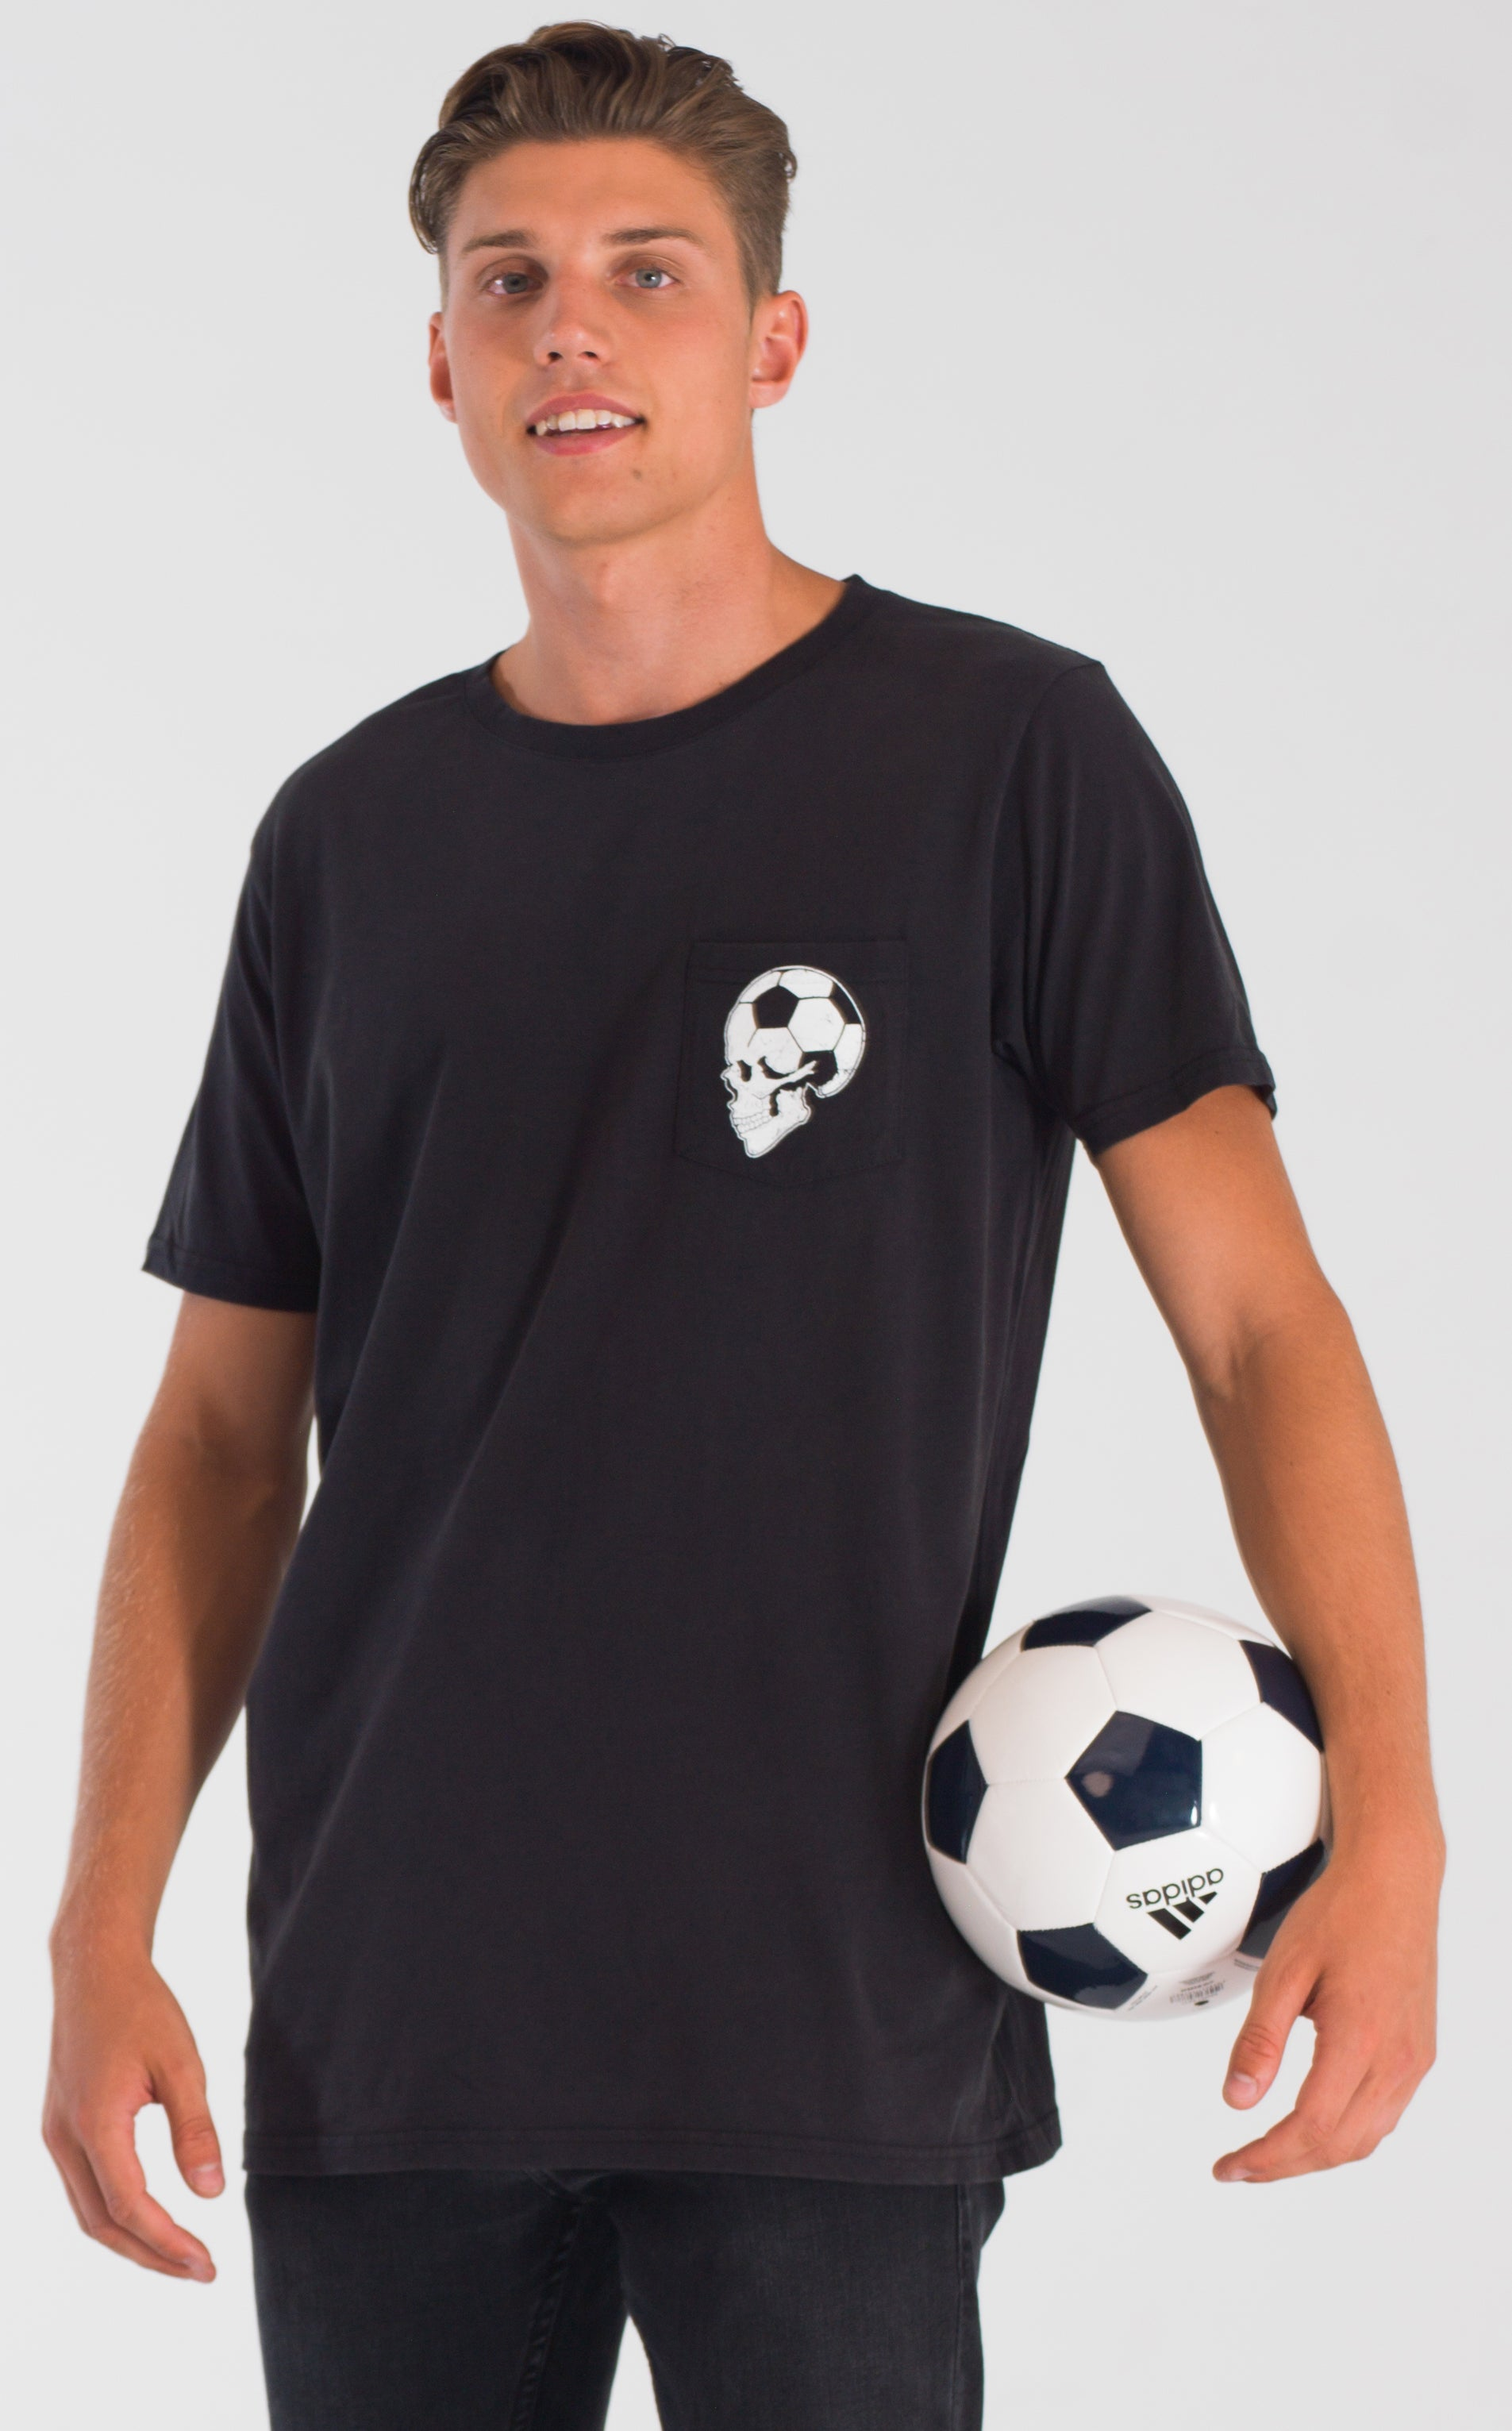 Football Brain T-shirt - Adults Unisex